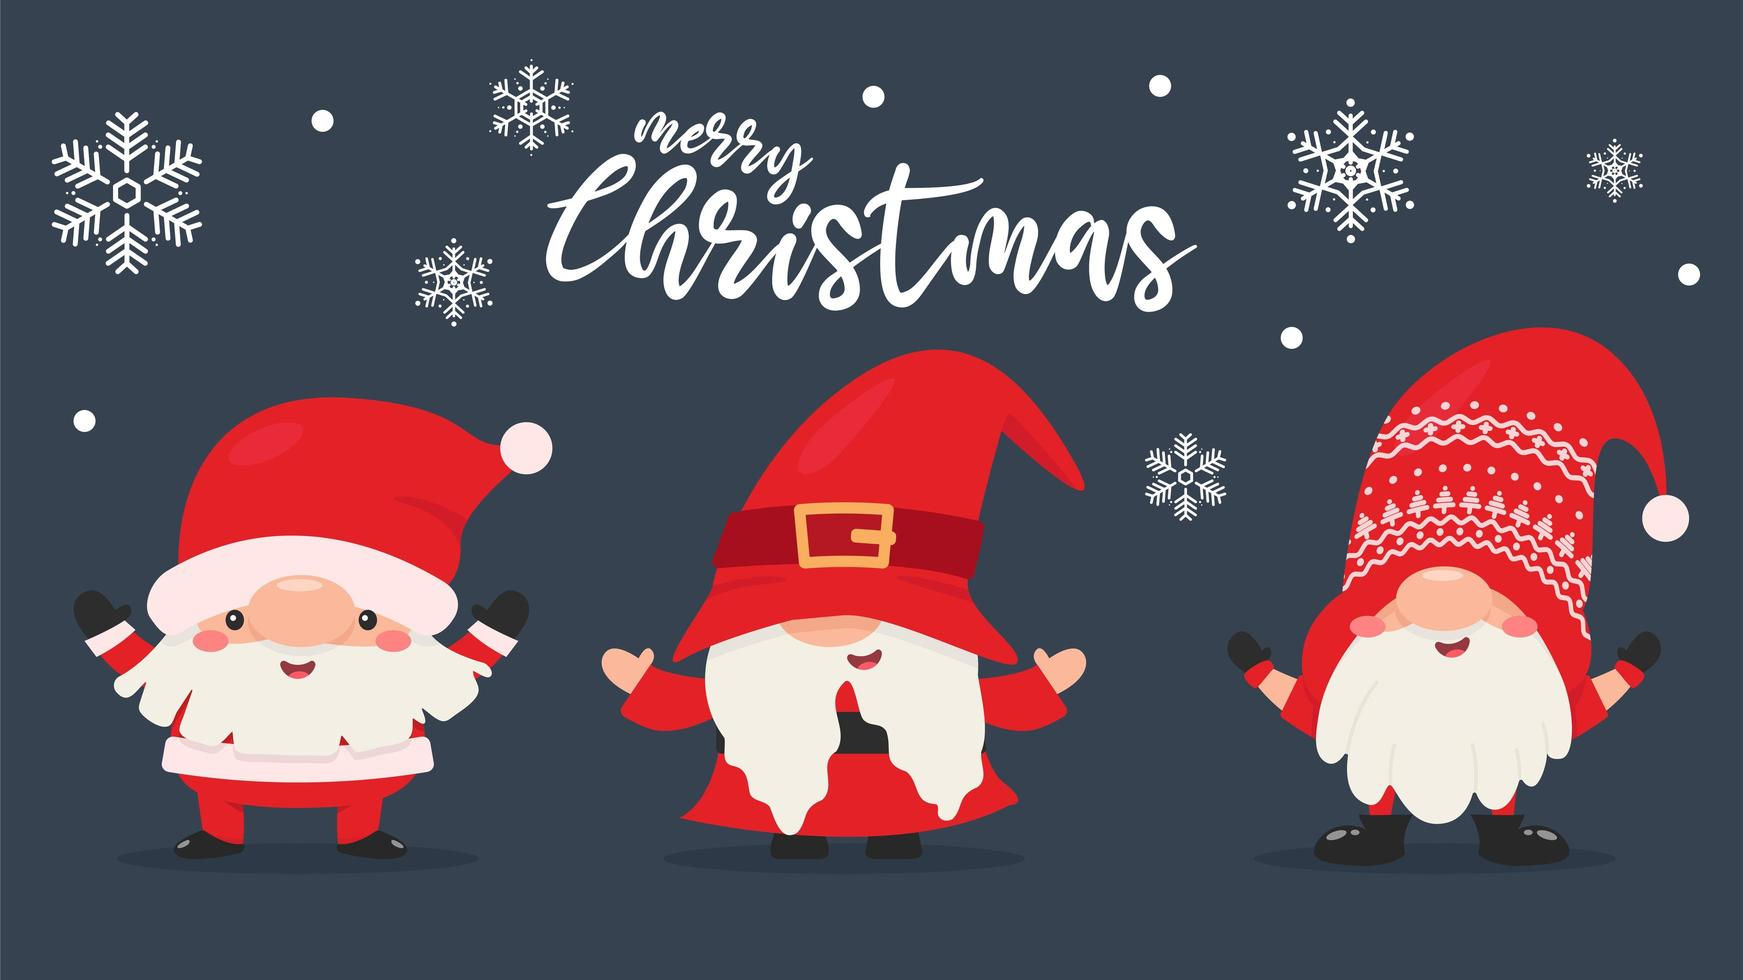 Dwarf gnomes in Santa outfits with snowflakes vector